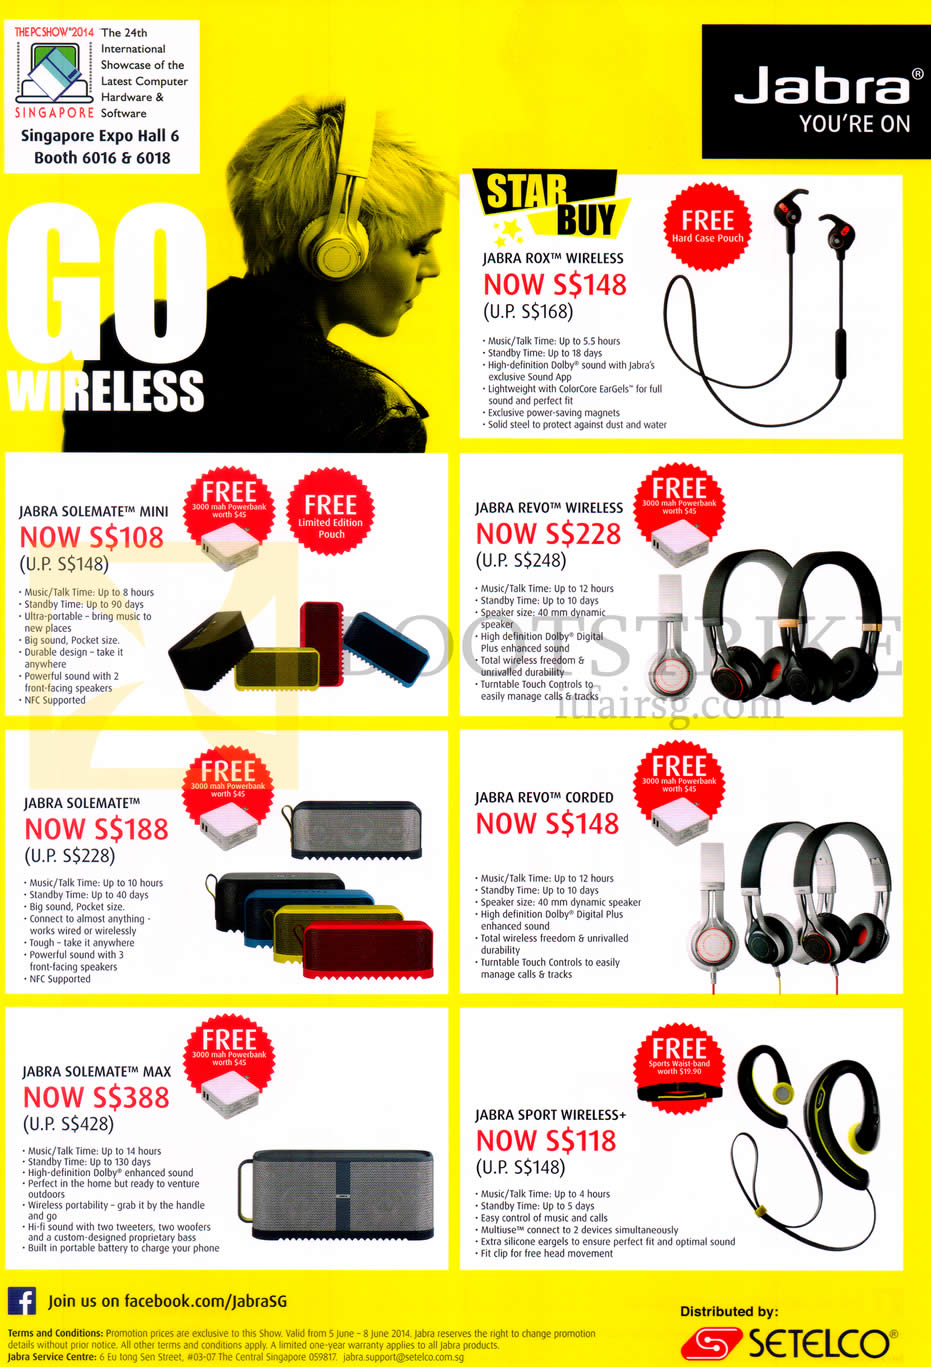 PC SHOW 2014 price list image brochure of Jabra Bluetooth Headsets, Speakers, Rox, Revo, Sport, Wireless, Revo Corded, Solemate, Mini, Max